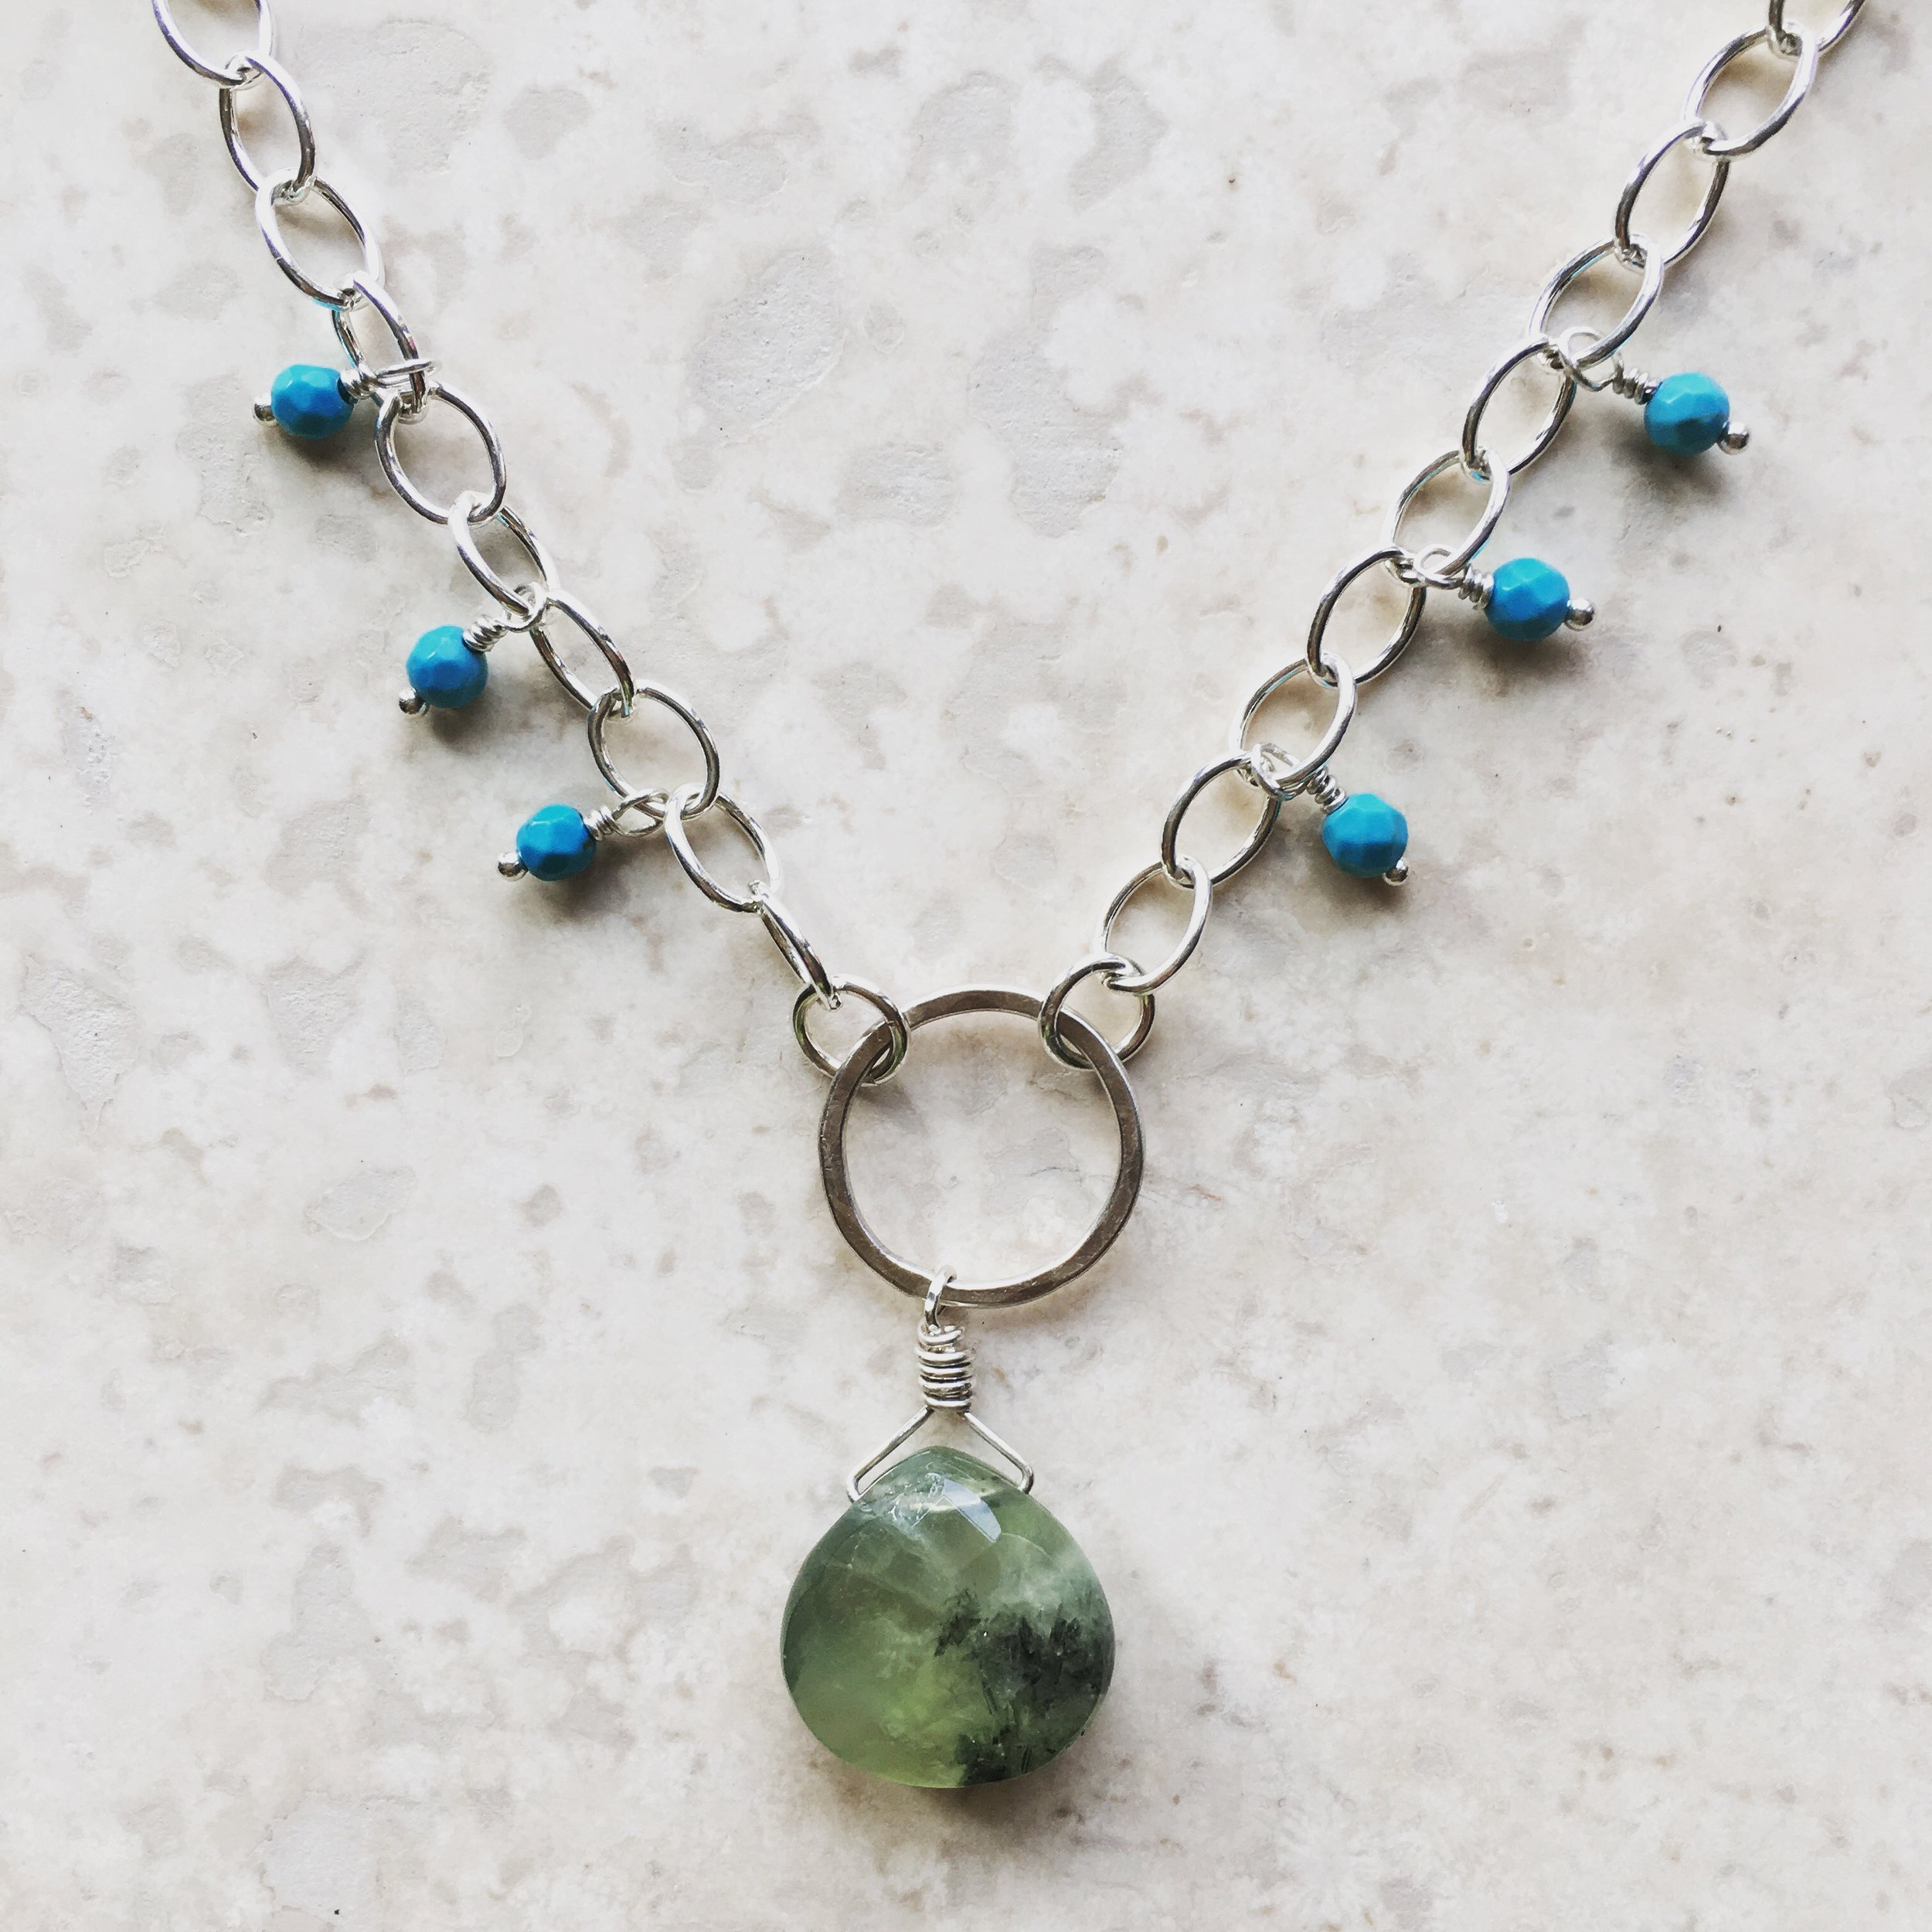 Here's the prehnite with the turquoise!